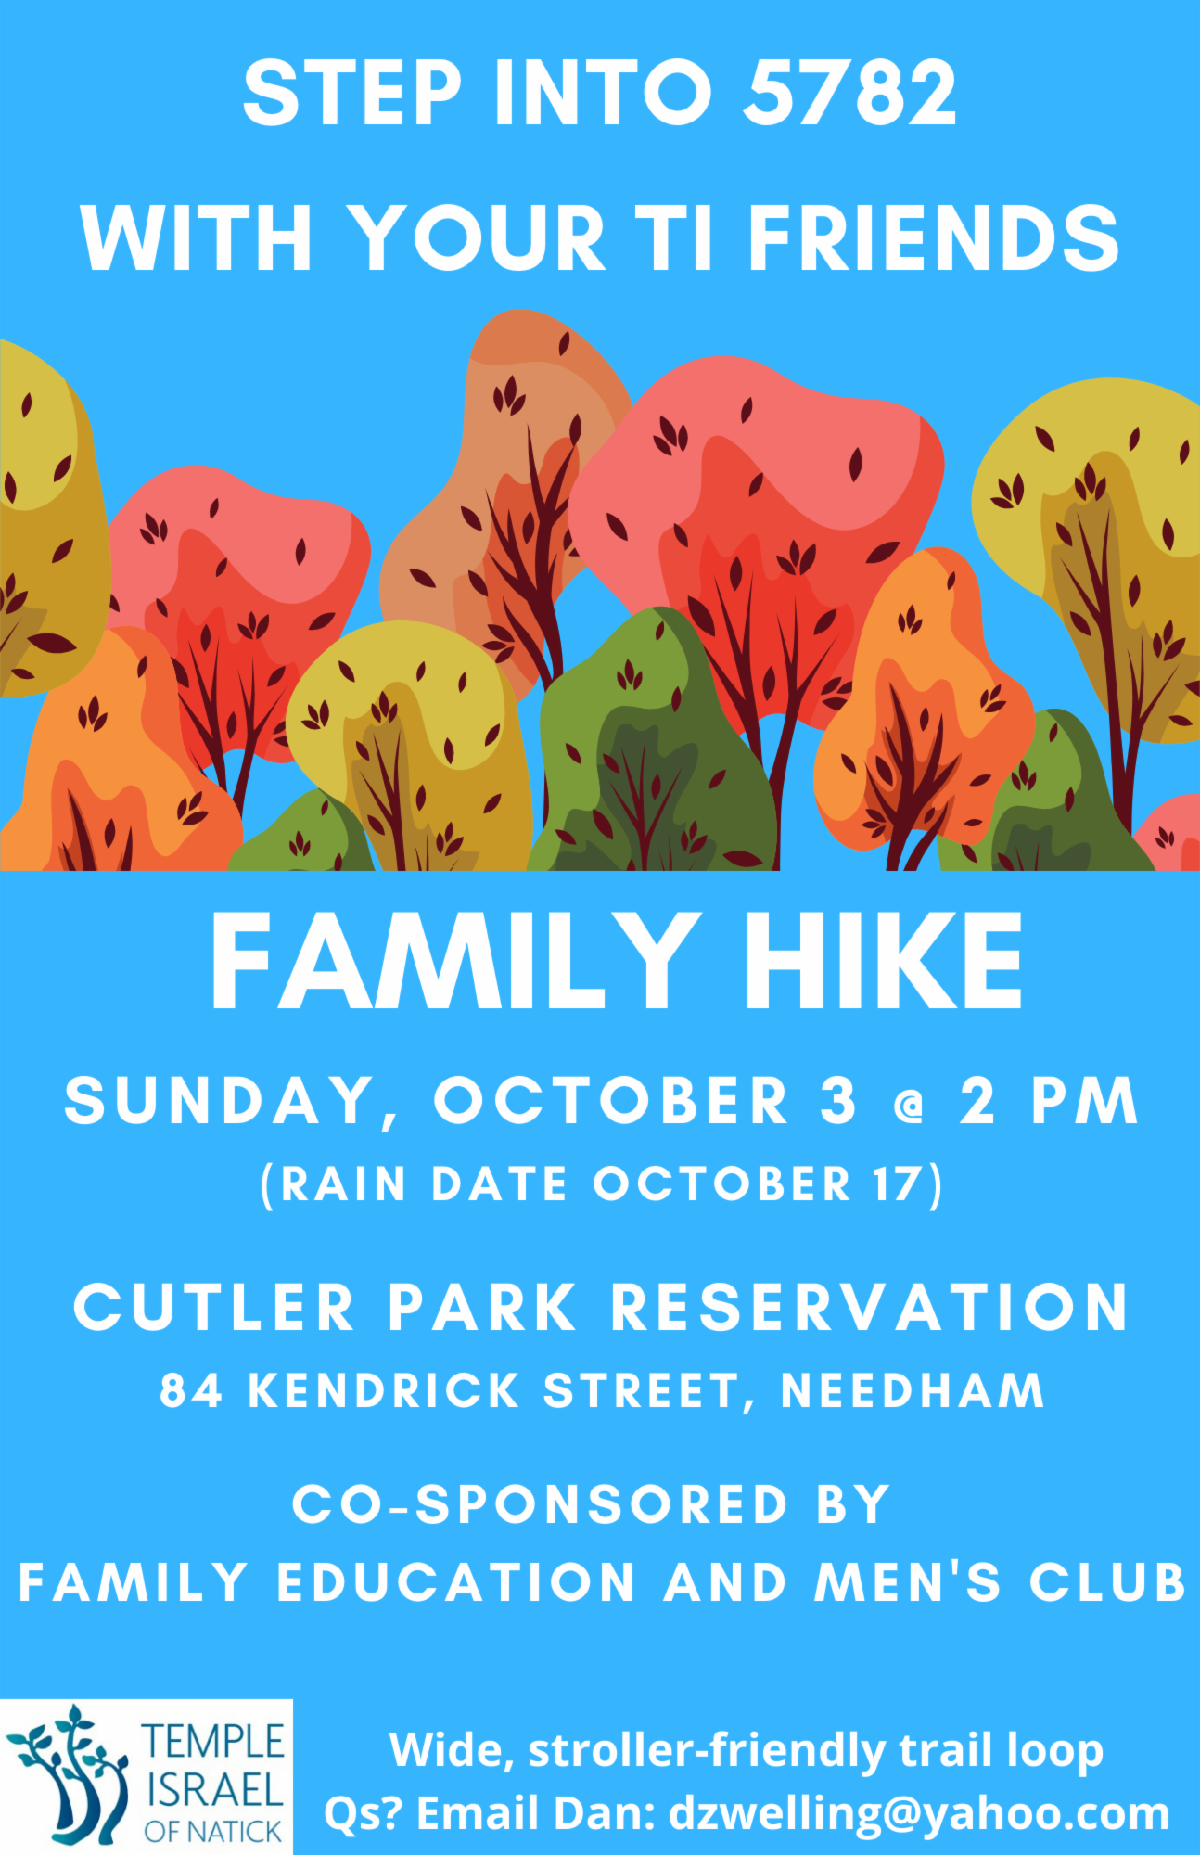 Flyer Describing the Family Hiking Event